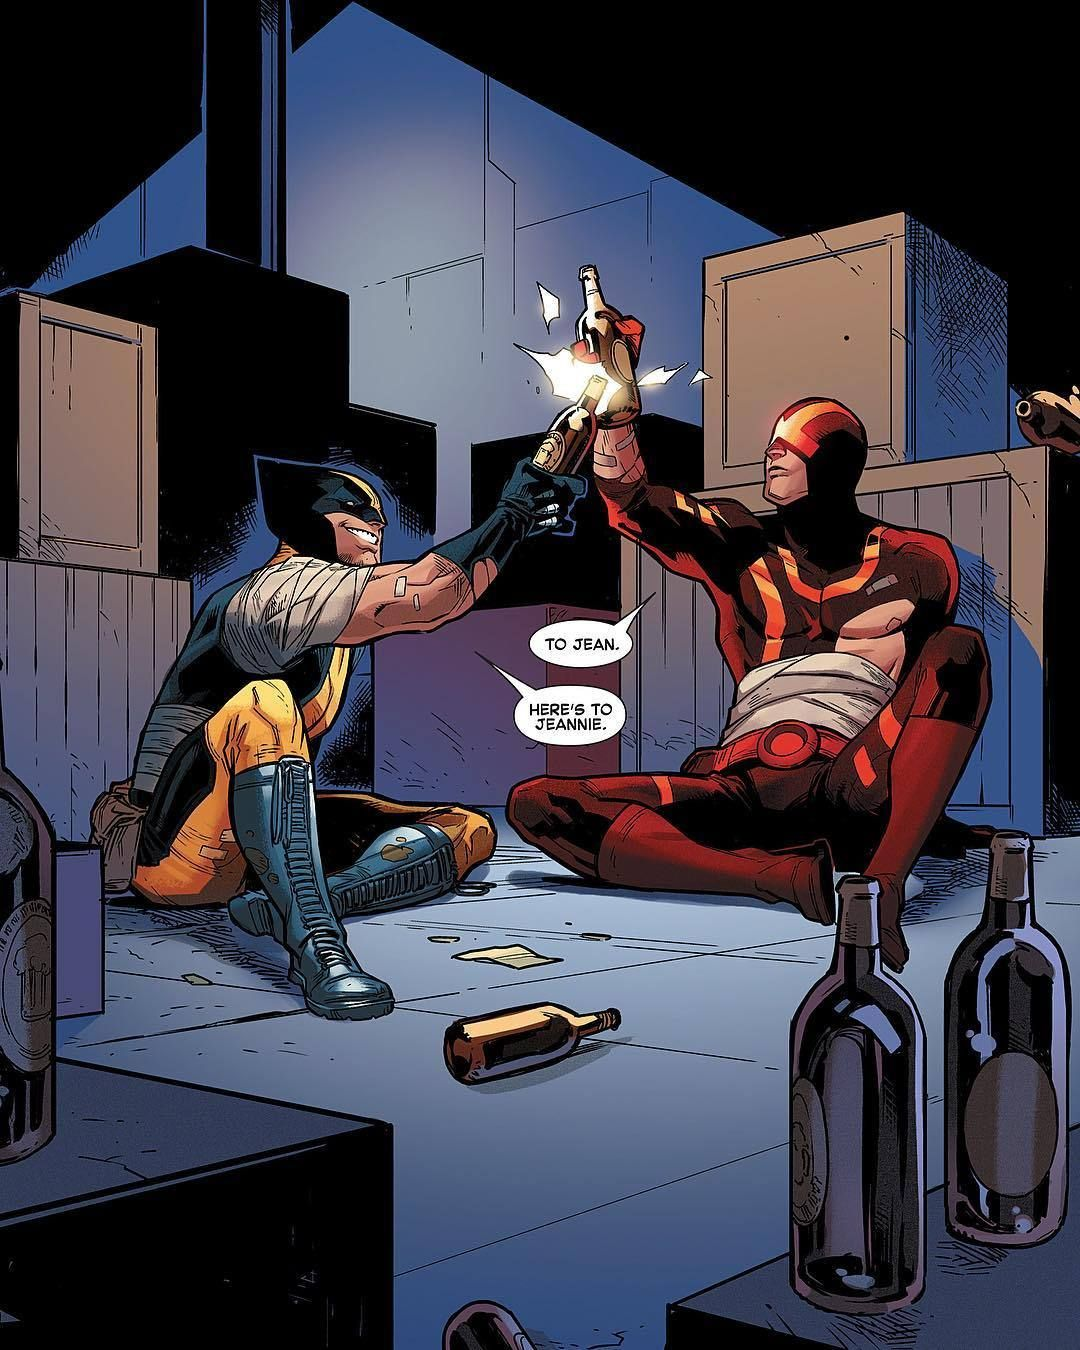 Heres To Jeannie To Bad These Two Will Not See Her Return Wolverine And The X Men Issue 40 Download Images At Nomoremuta Wolverine Marvel X Men Cyclops X Men